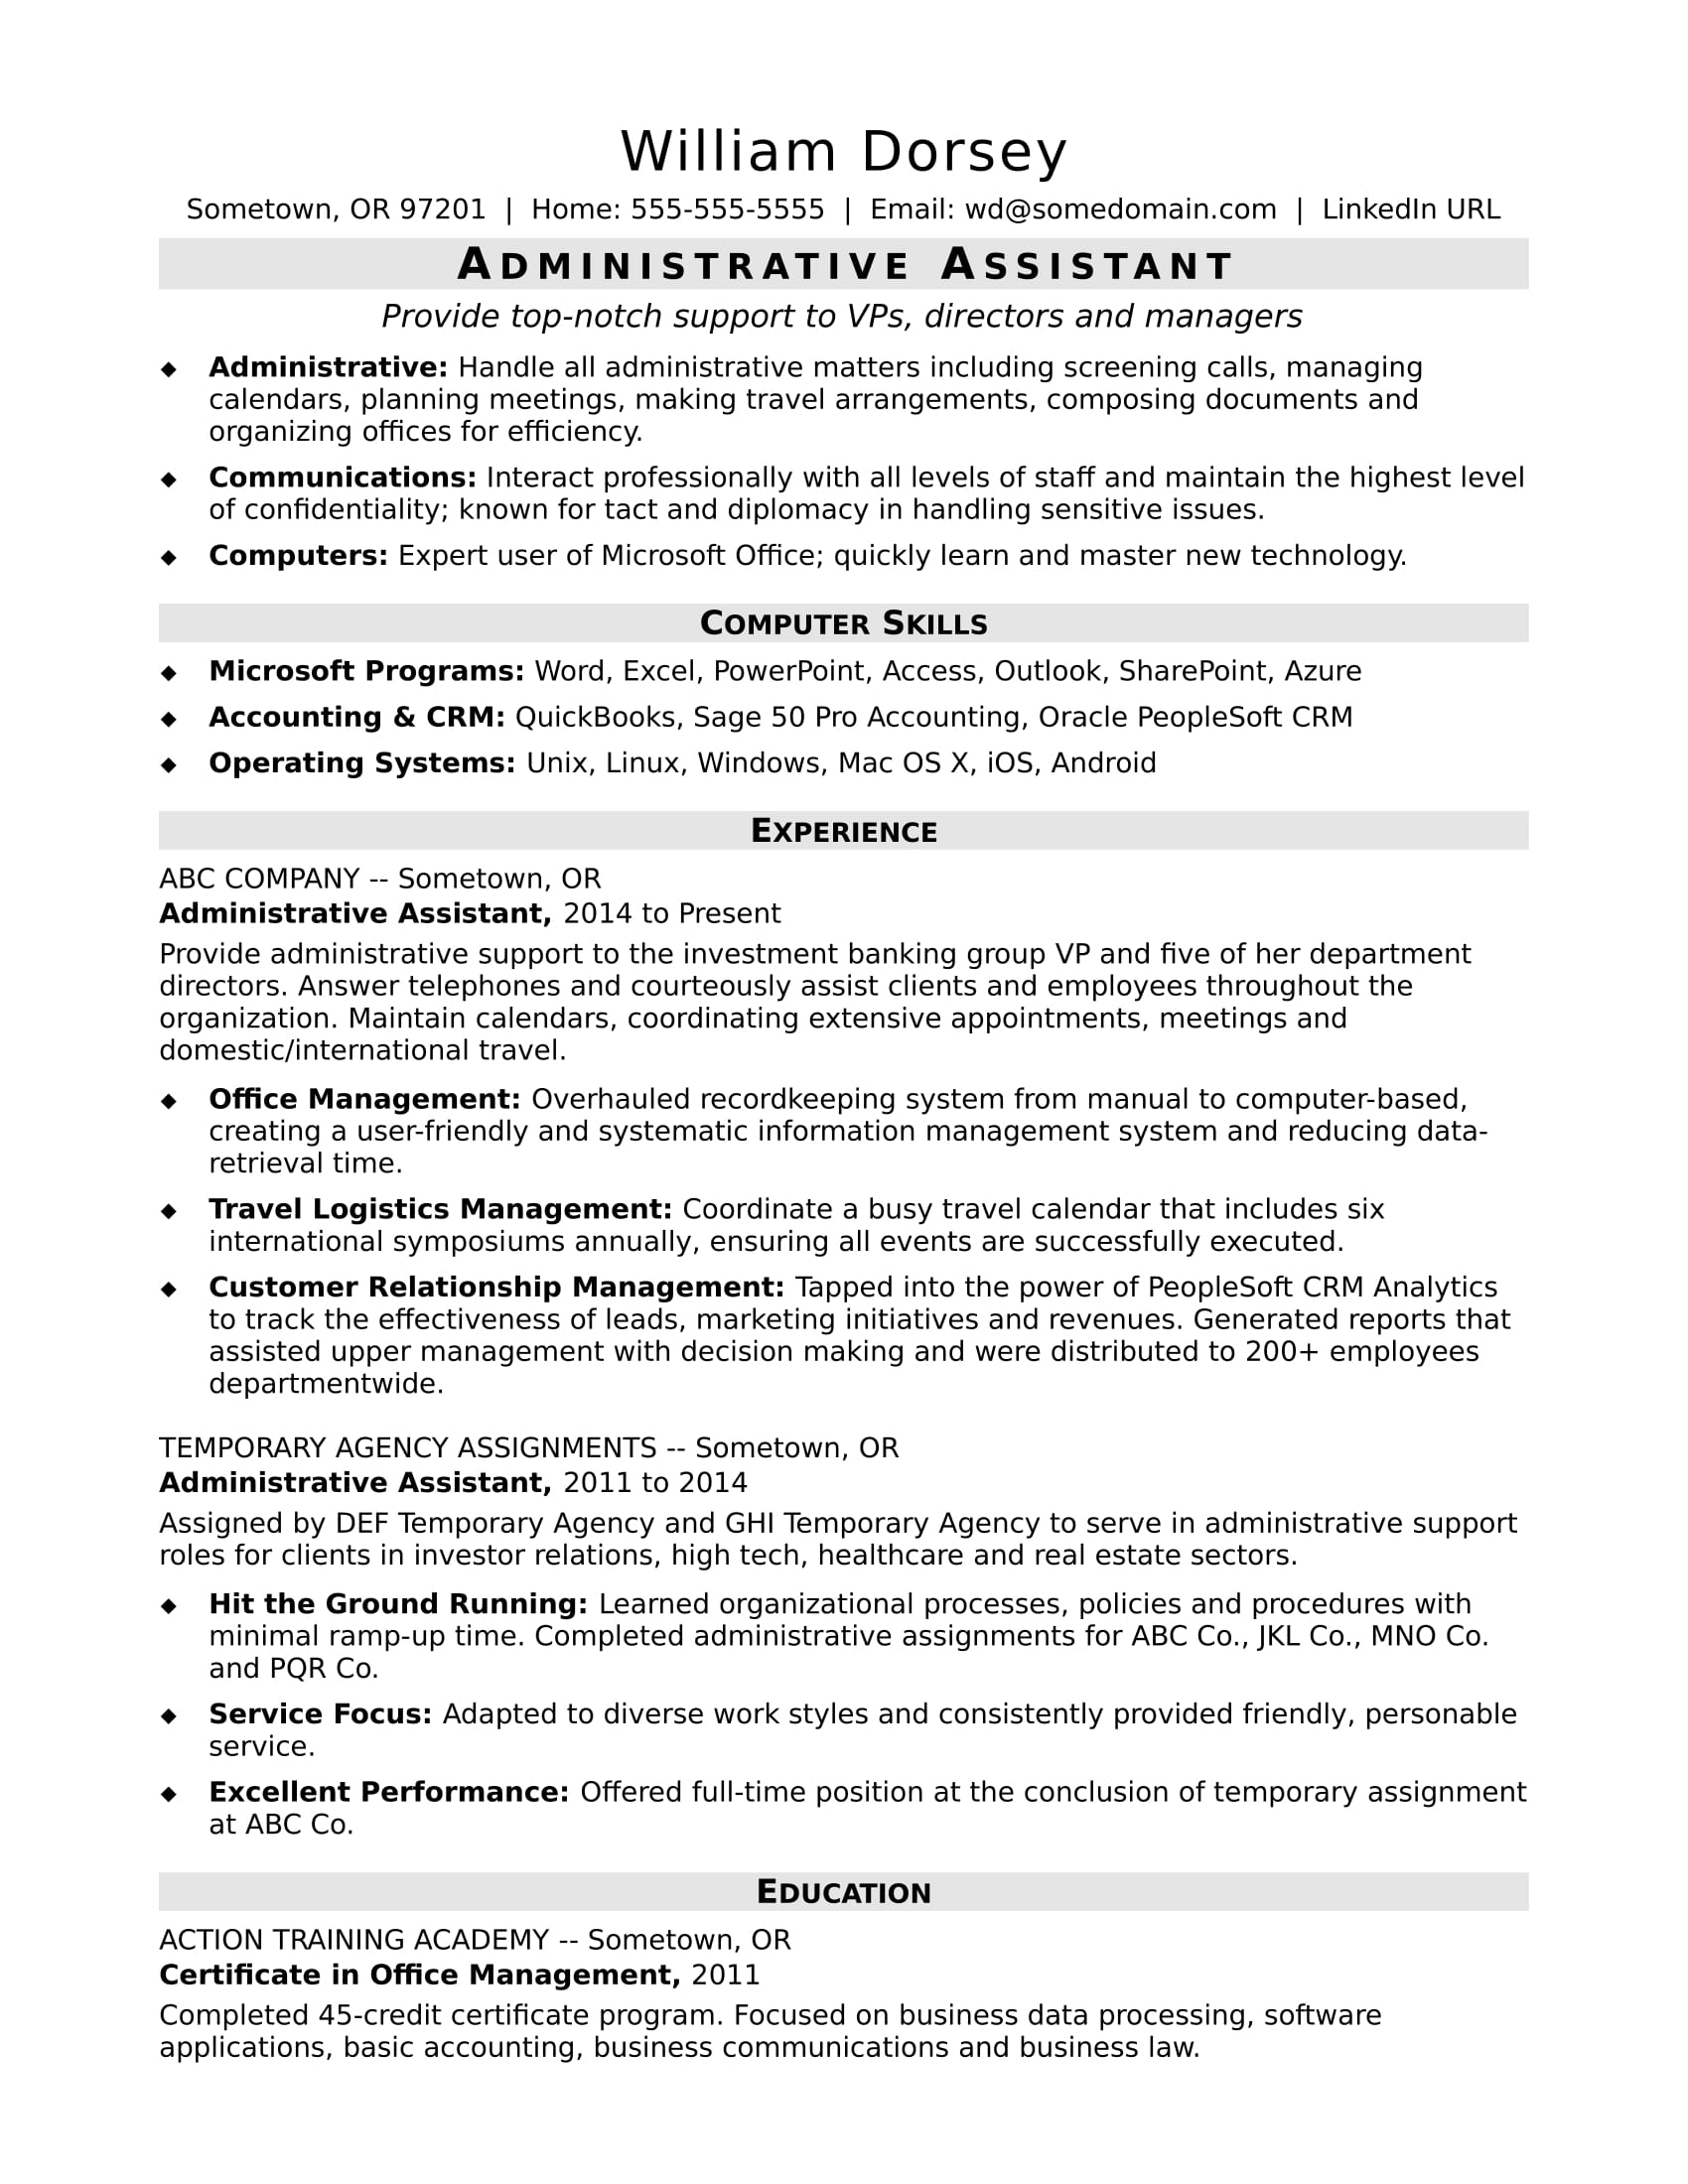 sample resume for a midlevel administrative assistant - Administrative Assistant Example Resume